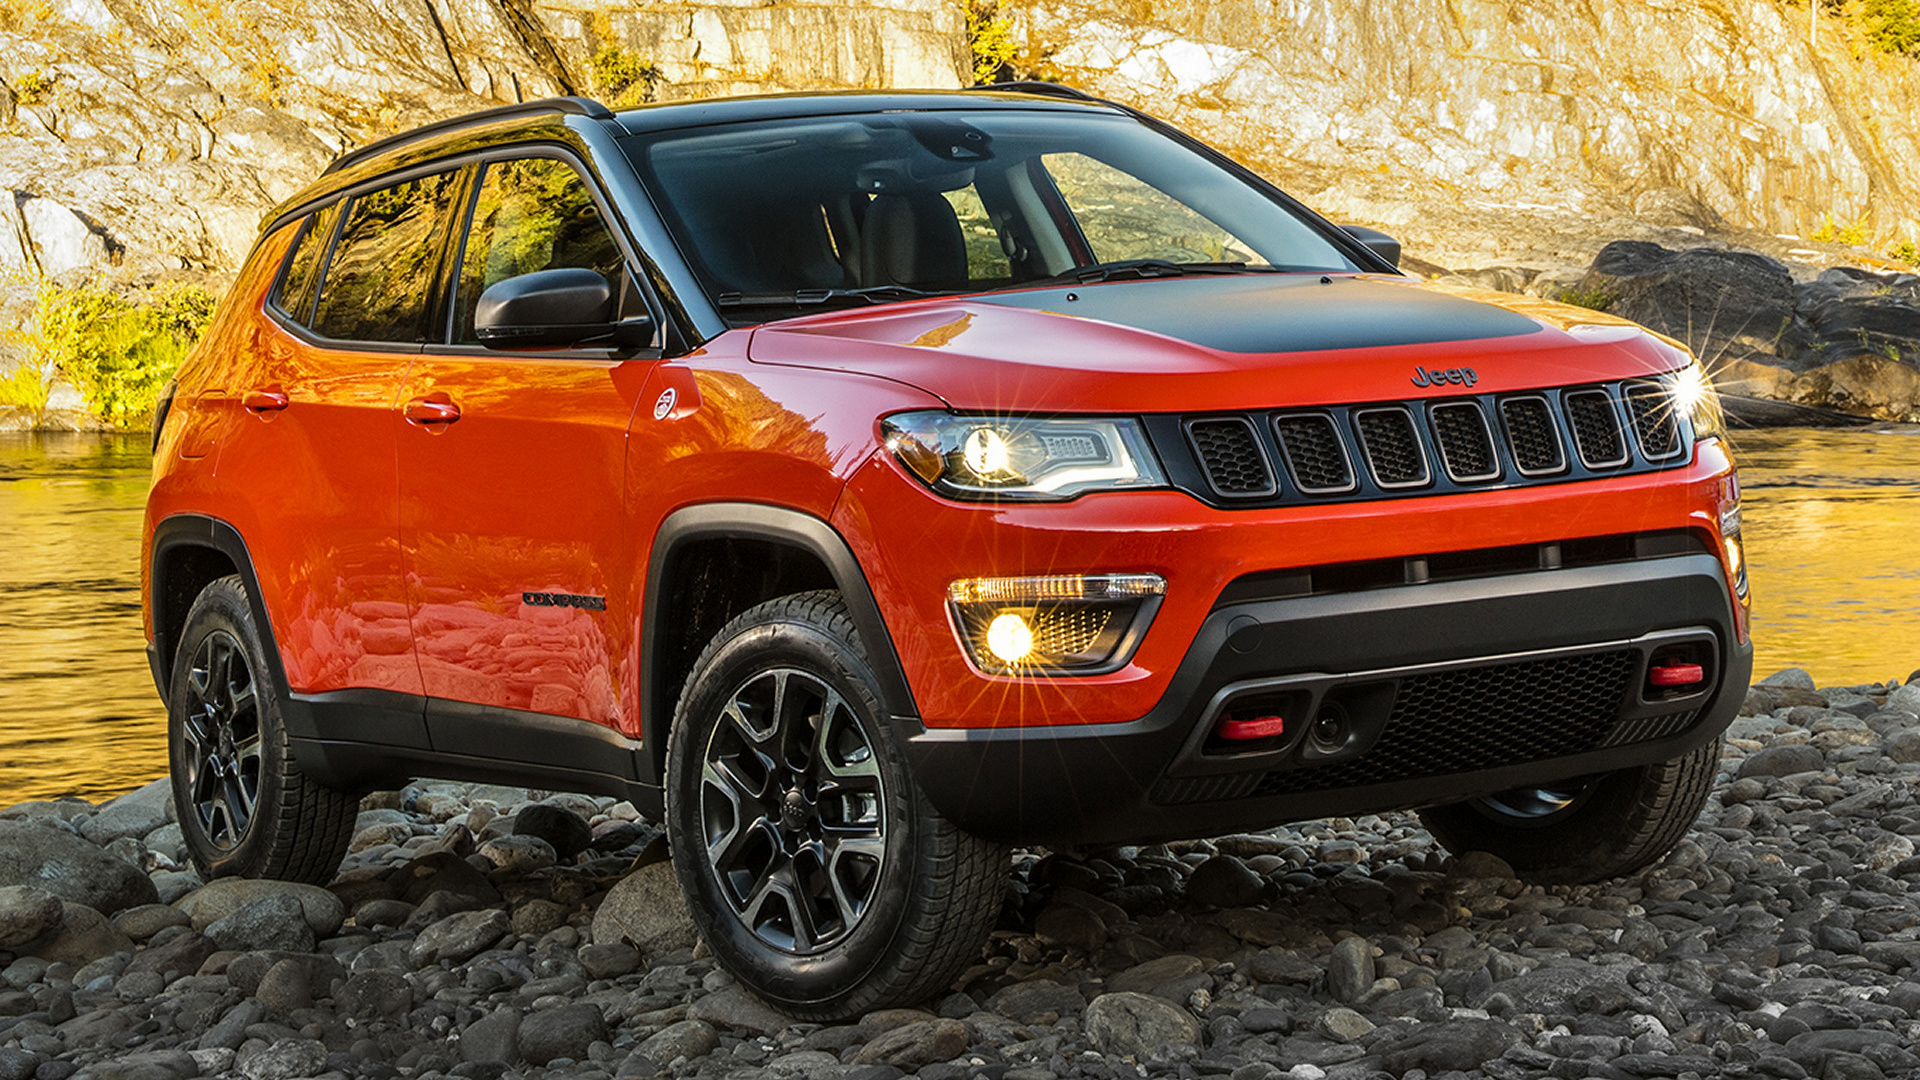 Ed Martin Honda >> 2017 Jeep Compass Trailhawk - Wallpapers and HD Images ...